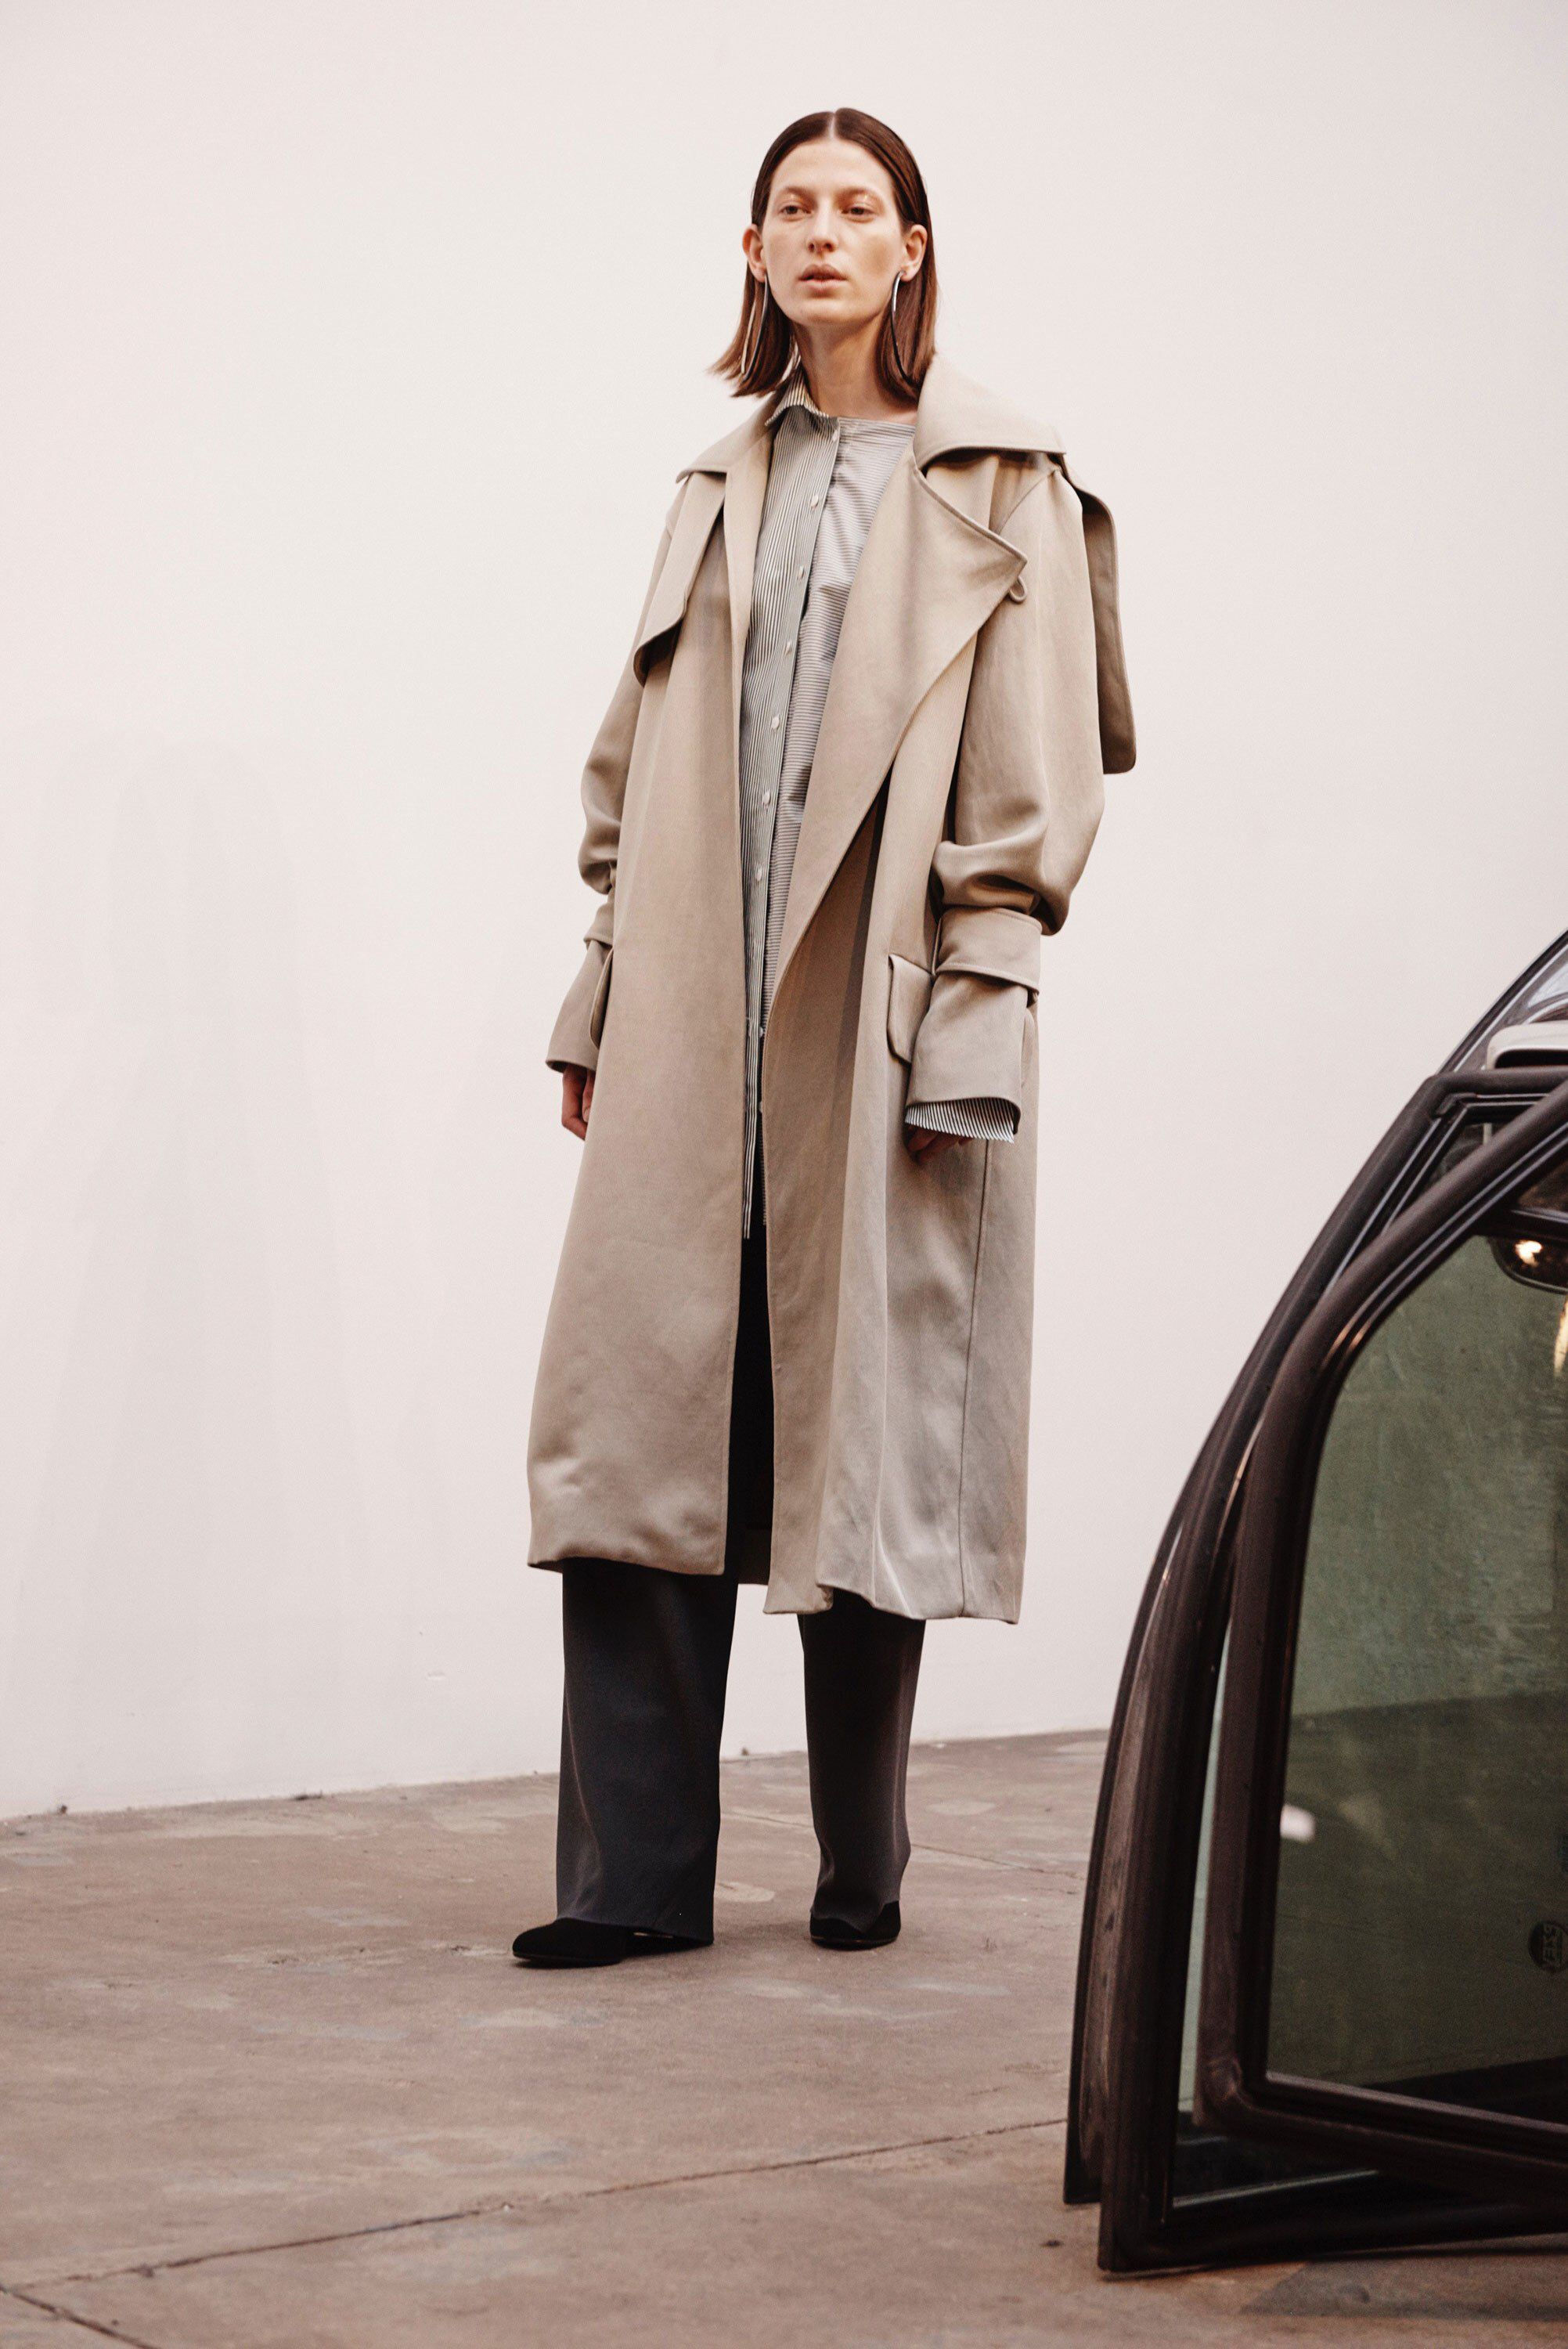 99f14242dc Christopher Esber Fall 2017 Ready-to-Wear Fashion Show Collection  See the  complete Christopher Esber Fall 2017 Ready-to-Wear collection. Look 1